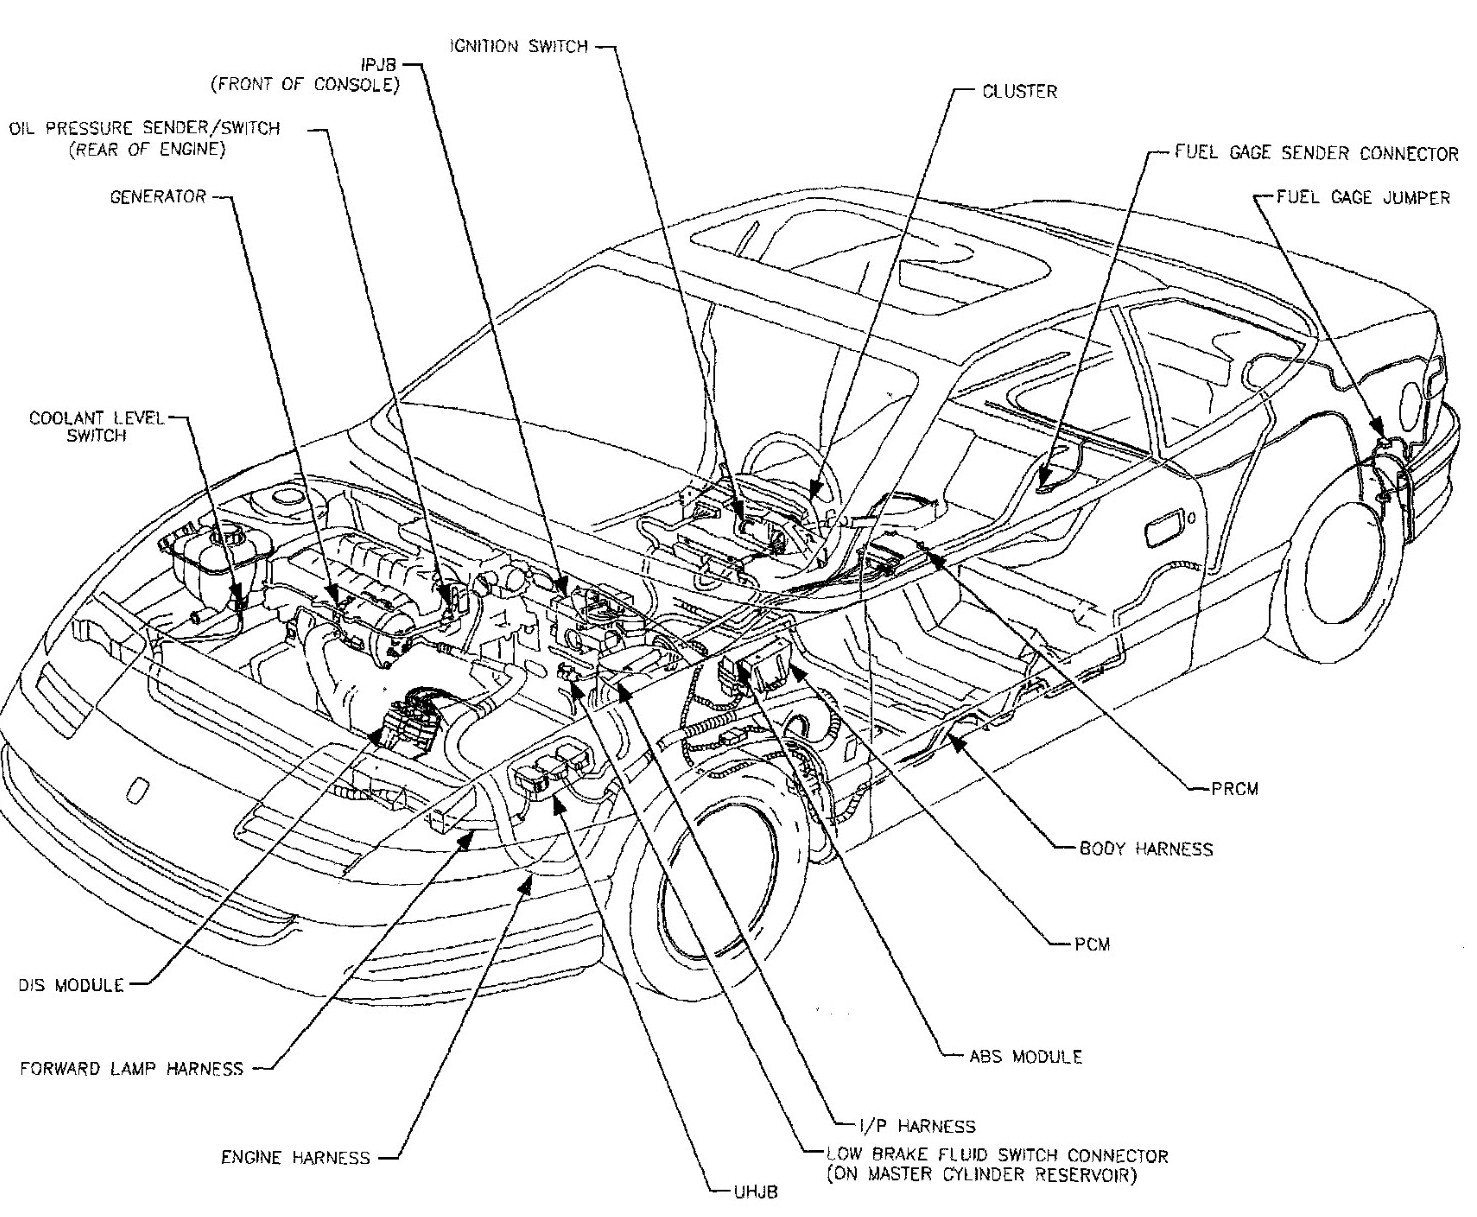 2007 saturn ion fuse box inside the car  saturn  auto wiring diagram